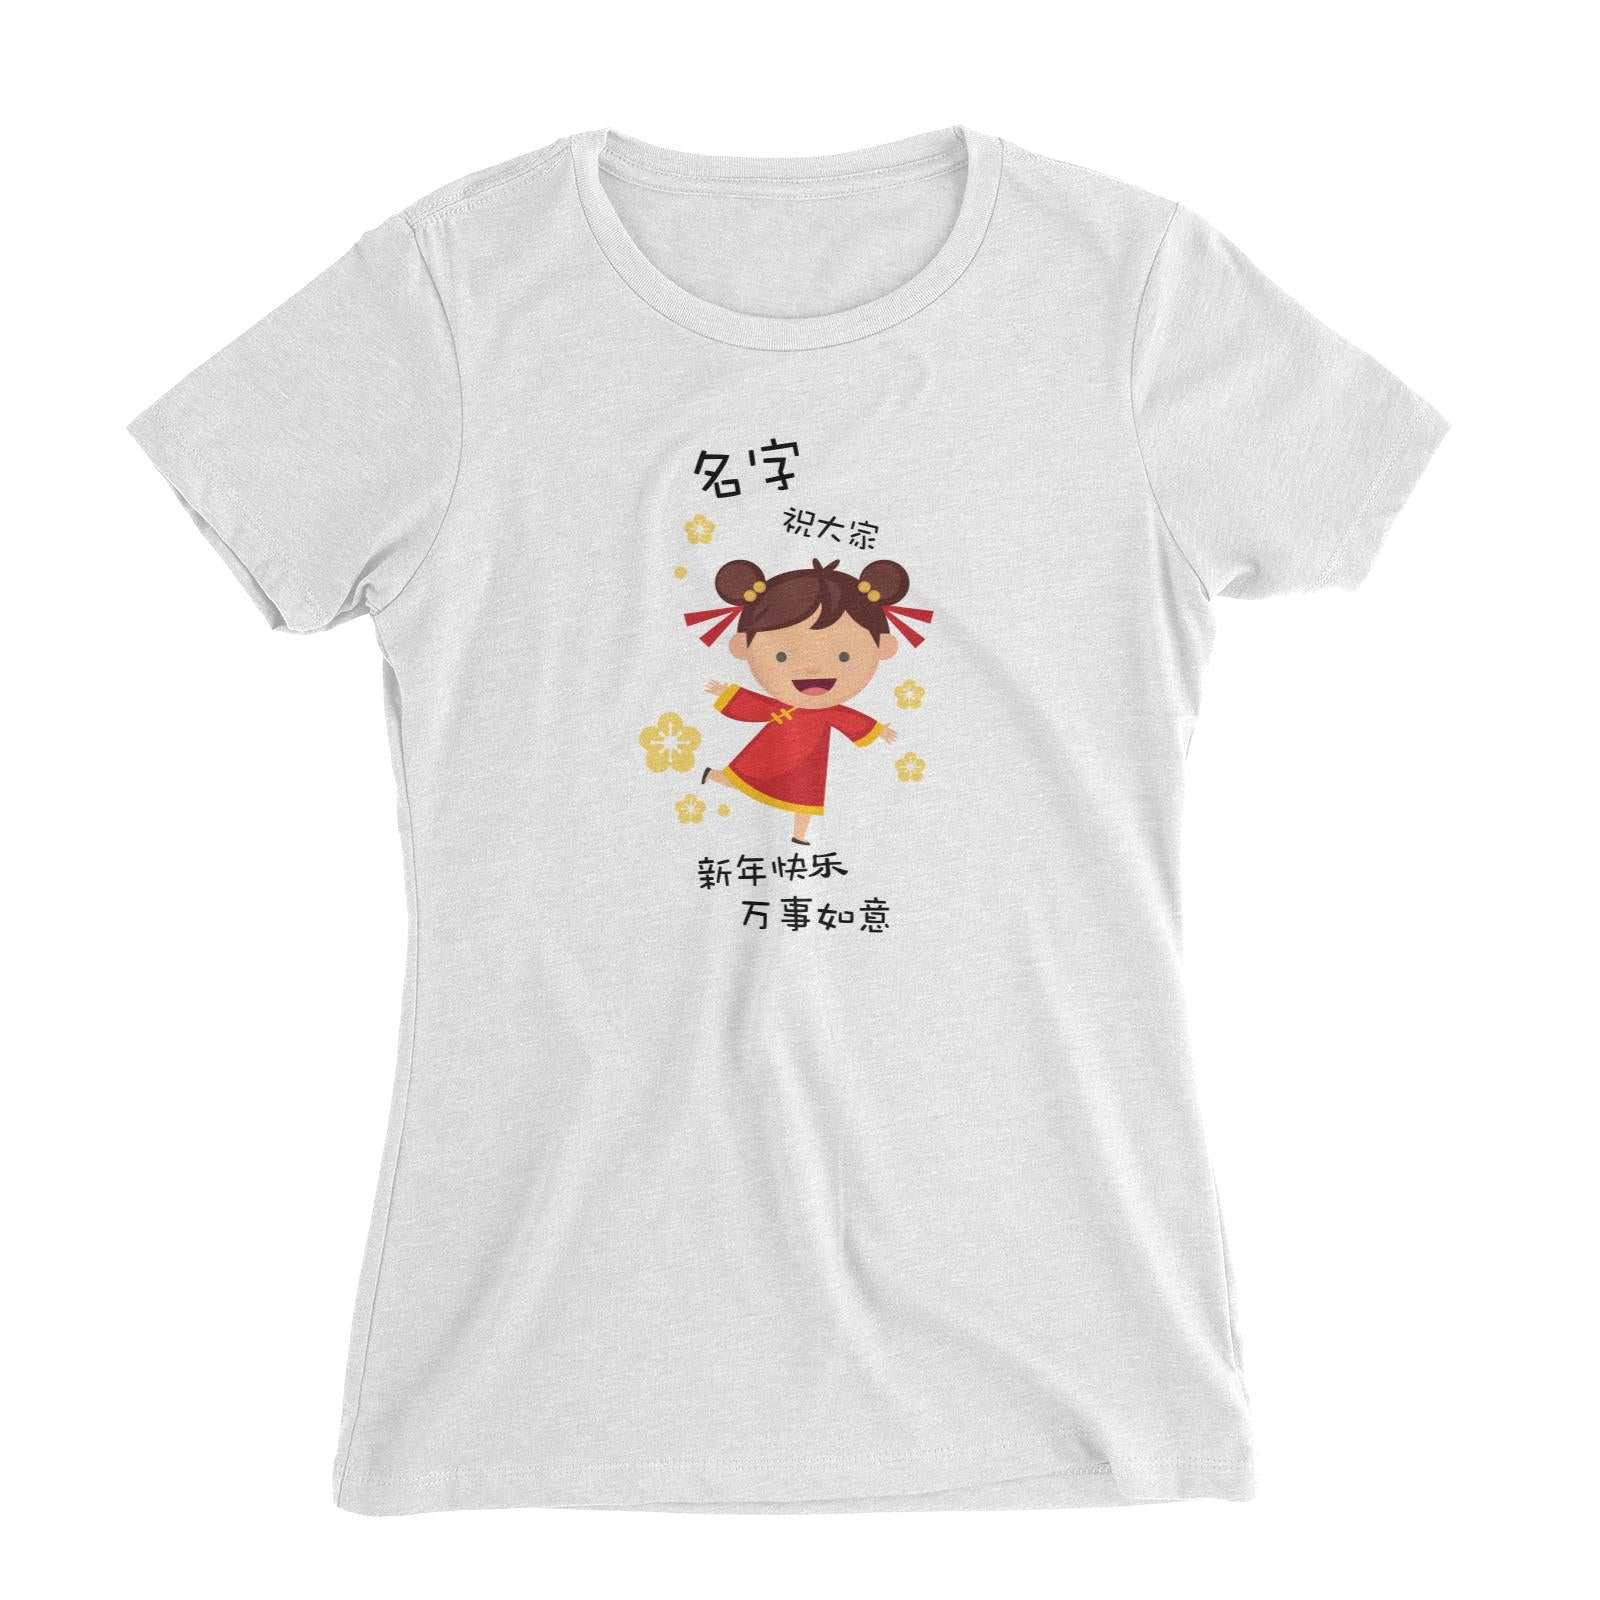 Chinese New Year Cute Girl 2 Wishes Everyone Happy CNY Women's Slim Fit T-Shirt  Personalizable Designs